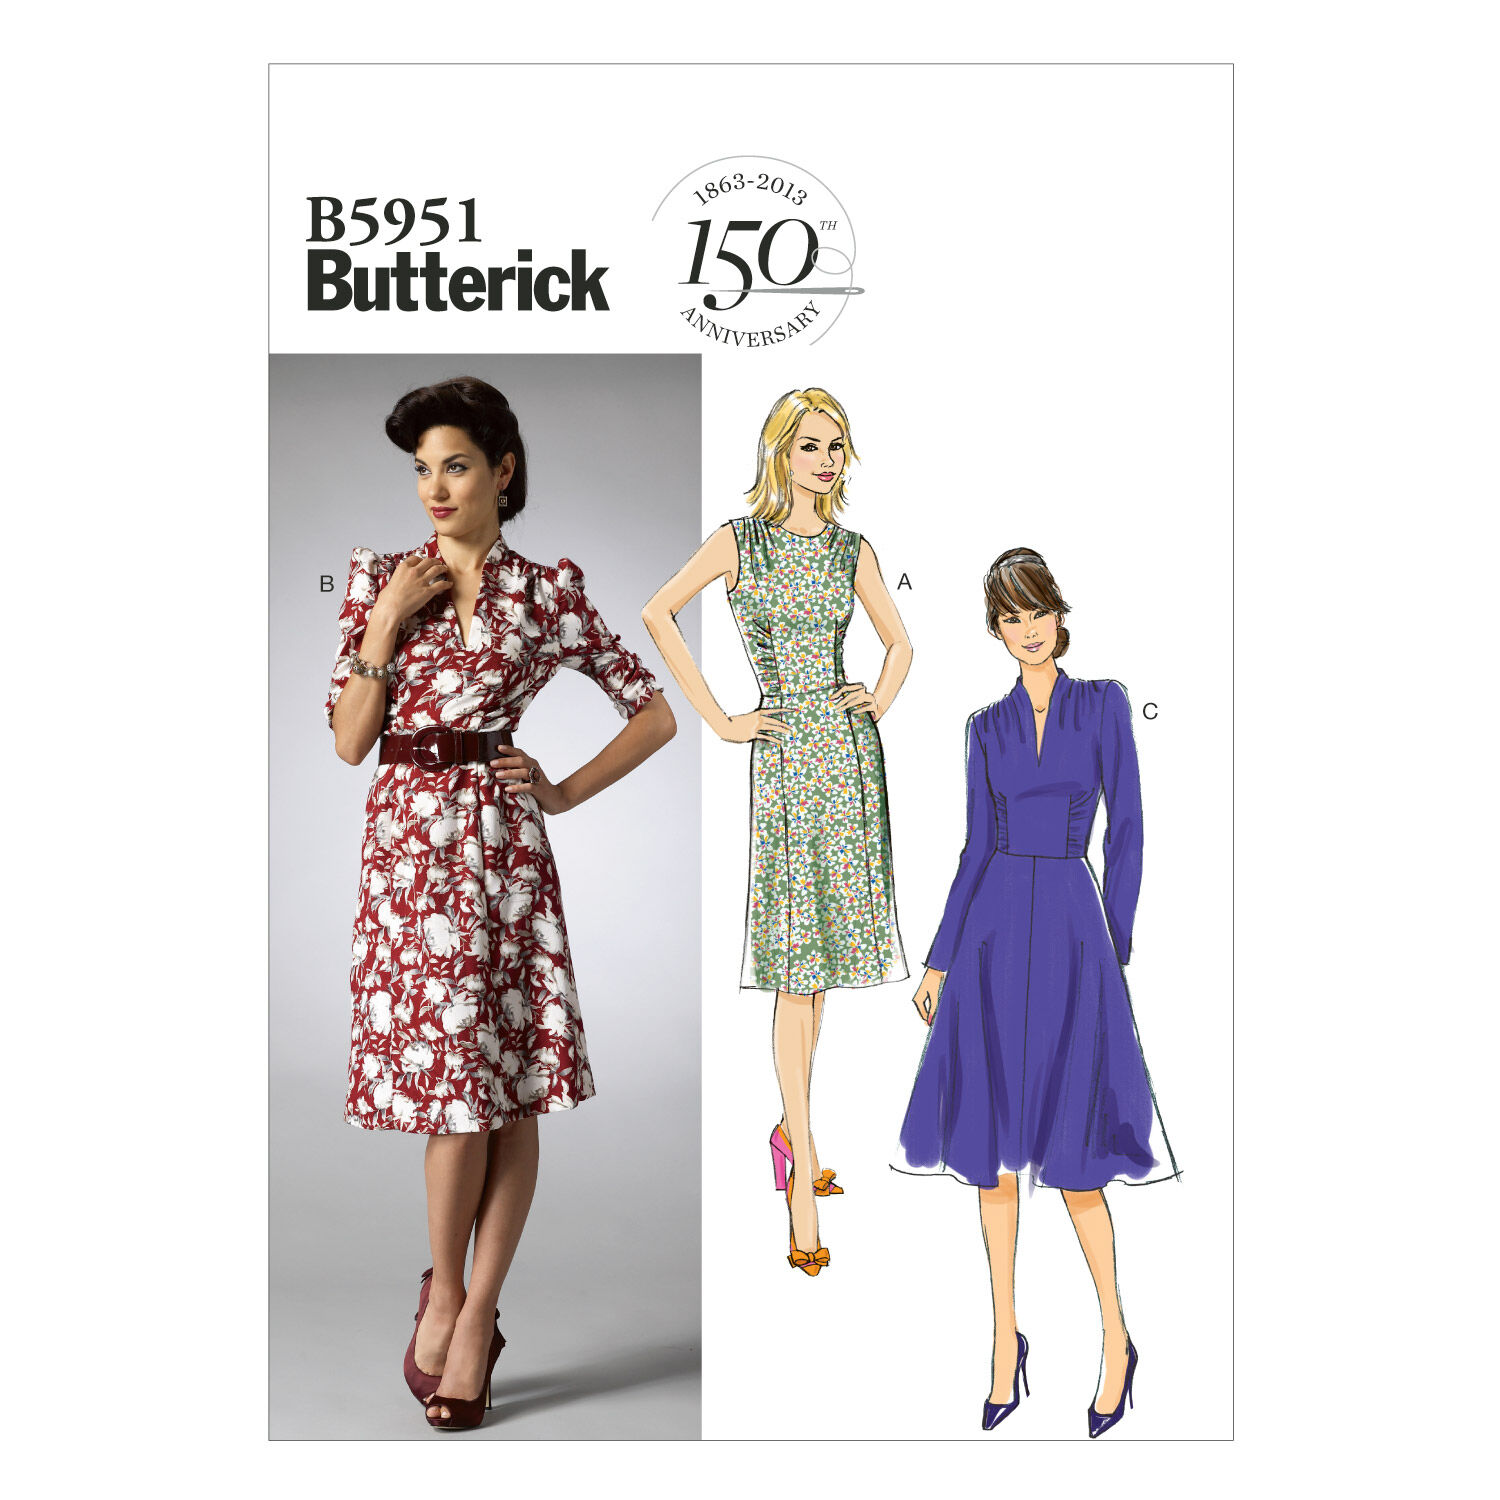 1940s Sewing Patterns – Dresses, Overalls, Lingerie etc Butterick Misses Dress - B5951 $18.95 AT vintagedancer.com